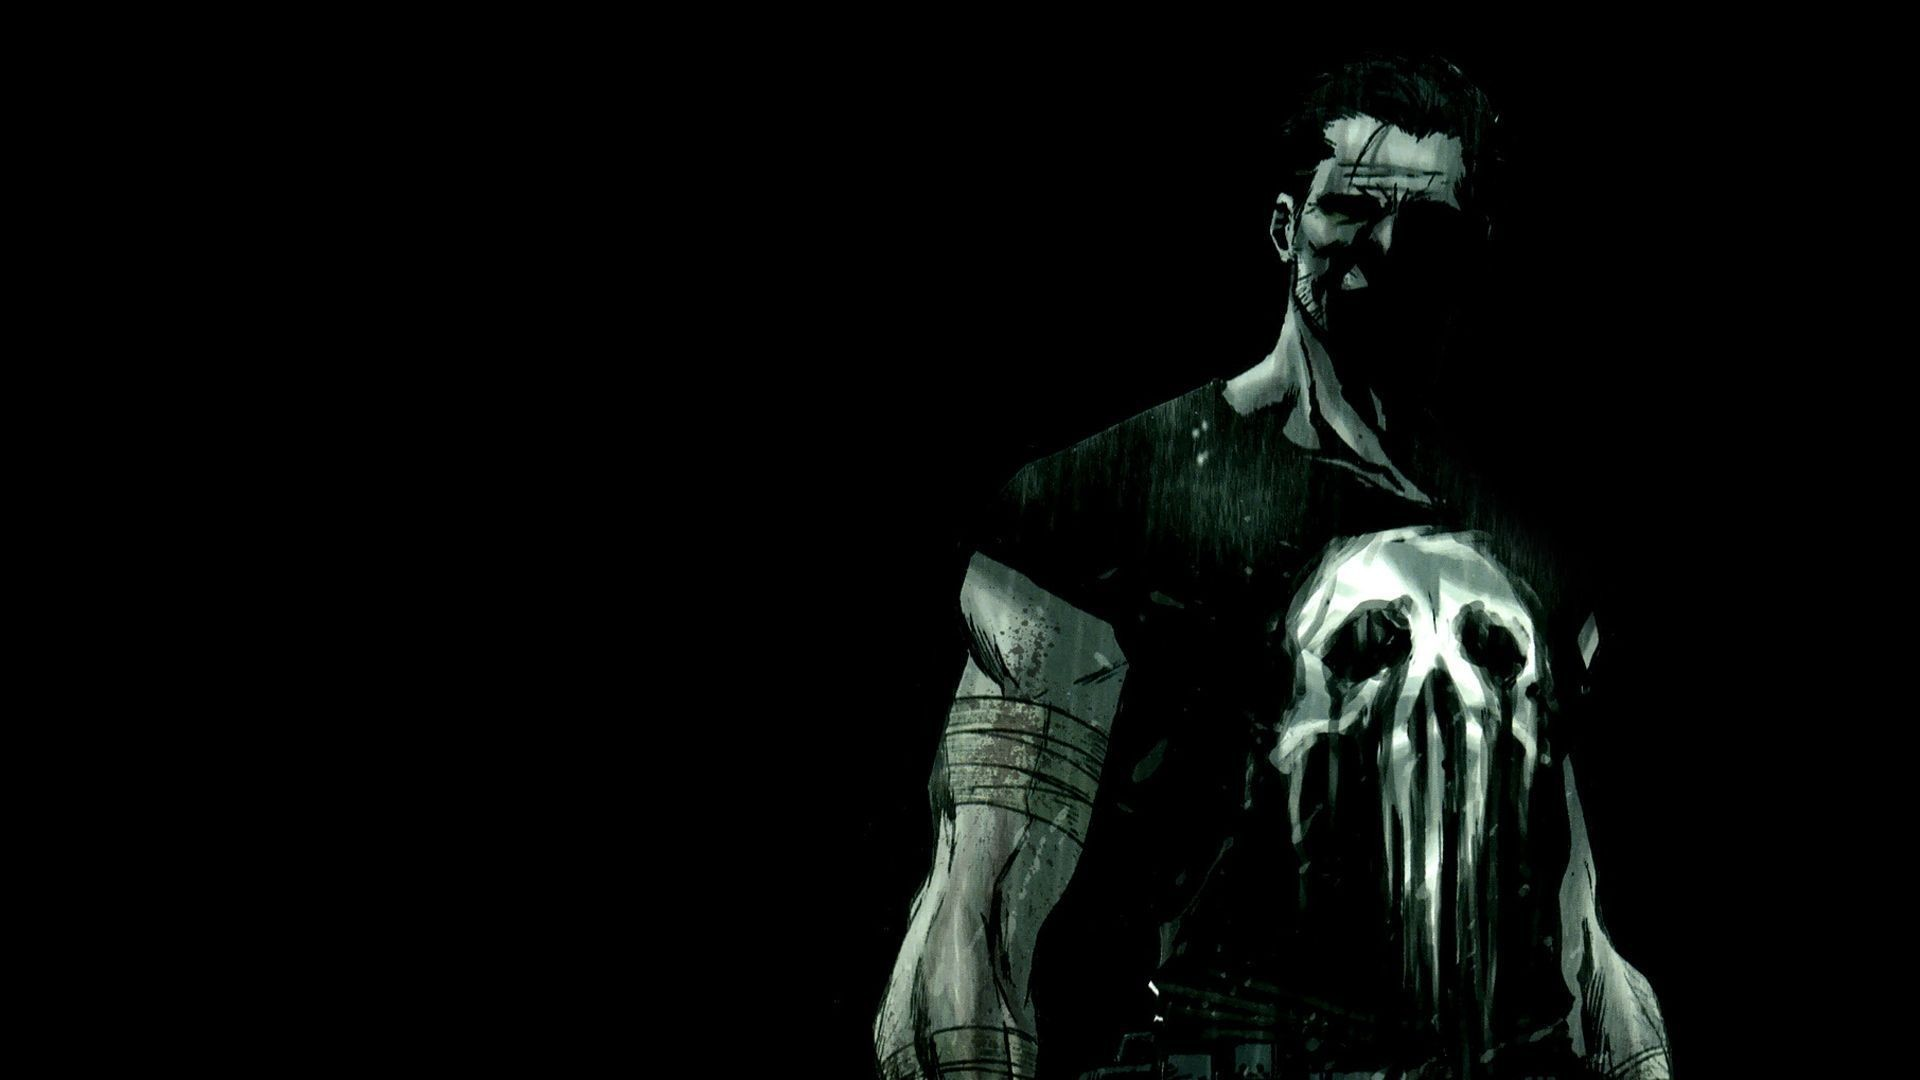 1920x1080 The Punisher HD Wallpapers Backgrounds Wallpaper | HD Wallpapers |  Pinterest | Punisher, Hd wallpaper and Wallpaper